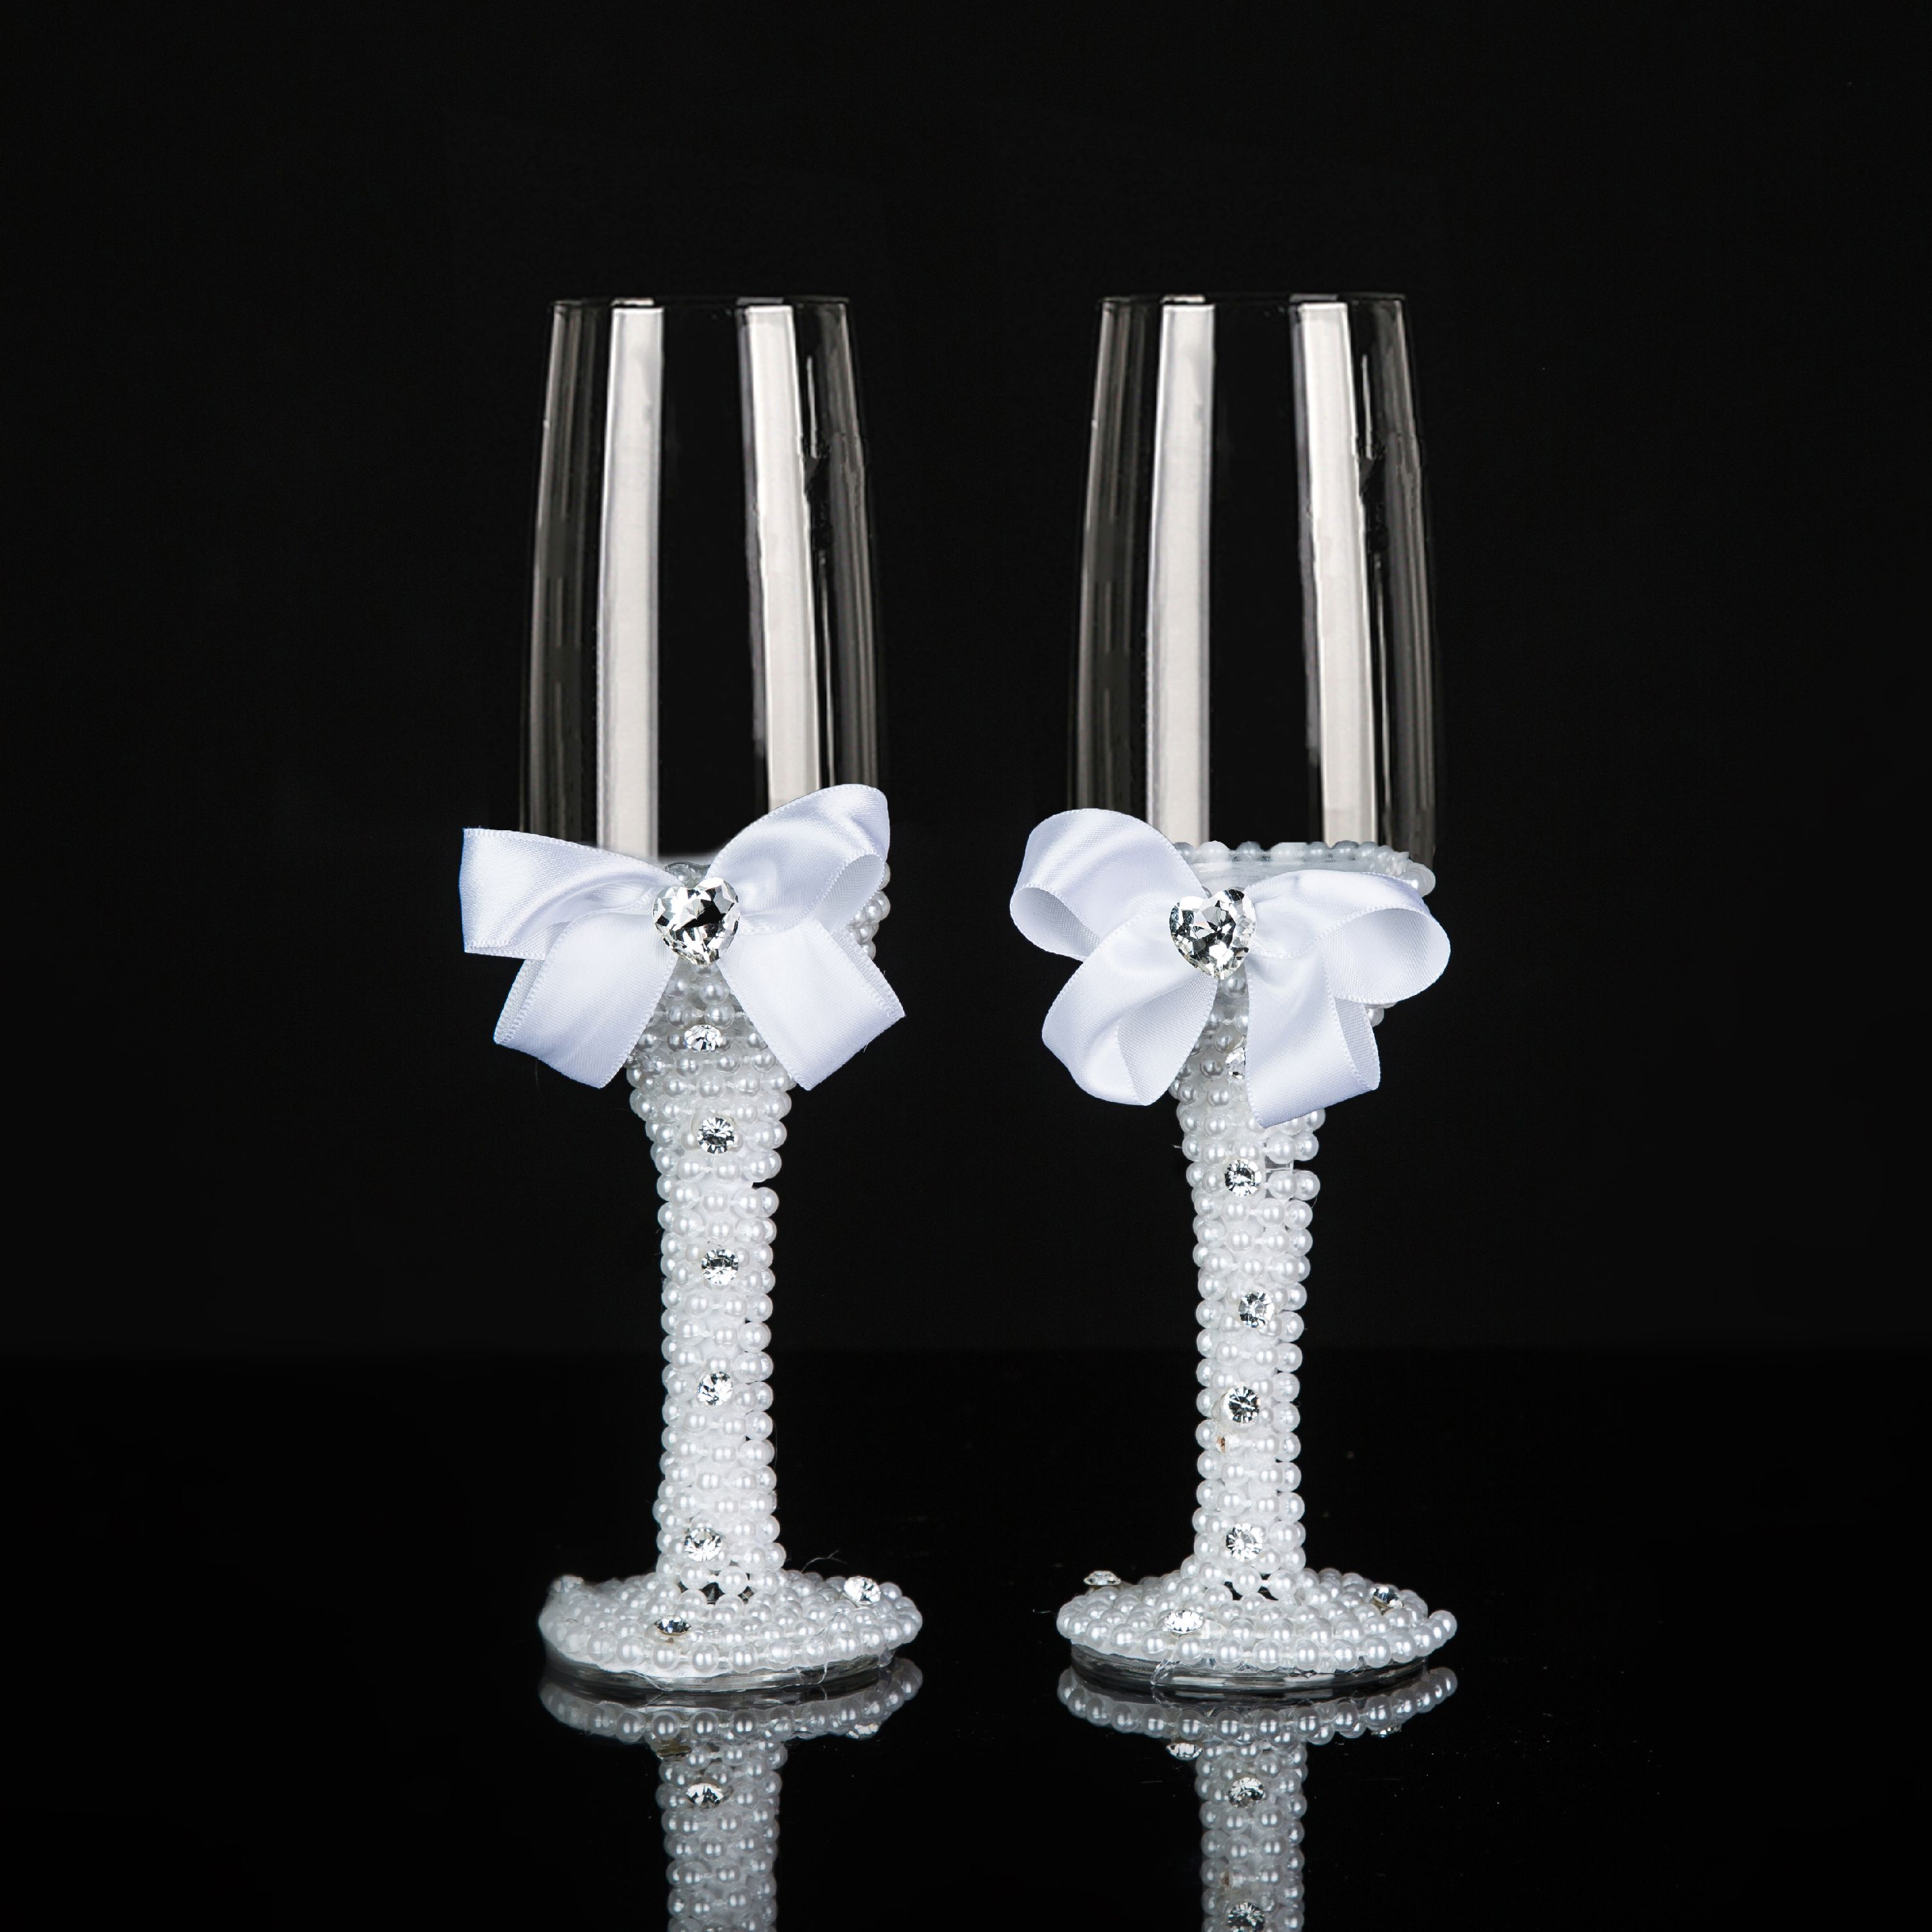 Decorative Wedding Glasses Mrs And Mr Champagne Flutes Toasting Glasses For  Bride And Groom - Wedding Gift Idea - Walmart.com